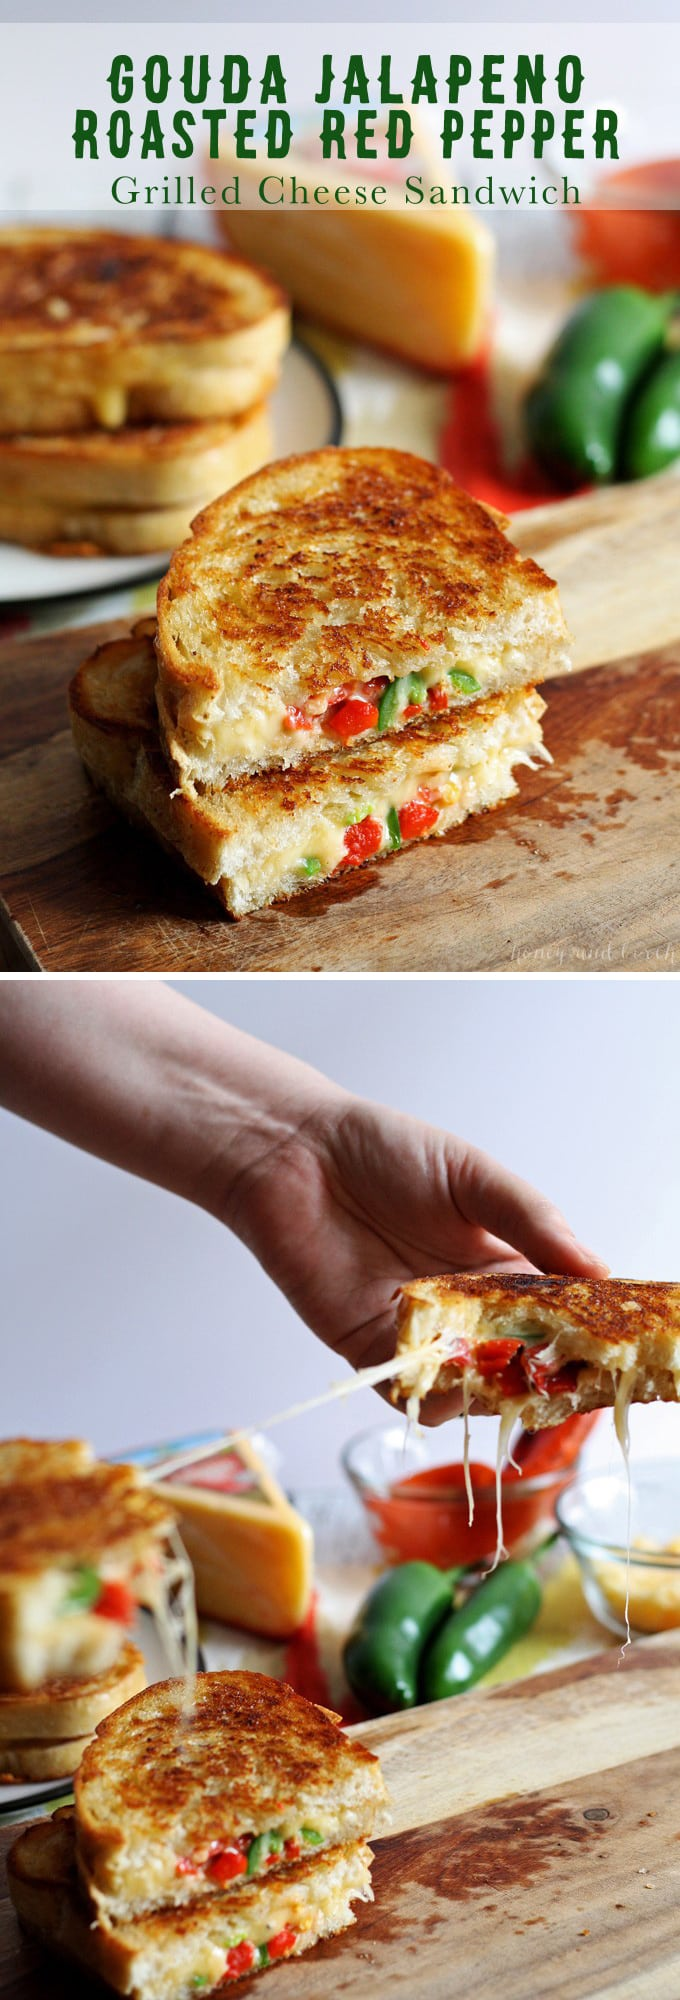 Gouda Jalapeno Roasted Red Pepper Grilled Cheese Sandwich | honeyandbirch.com